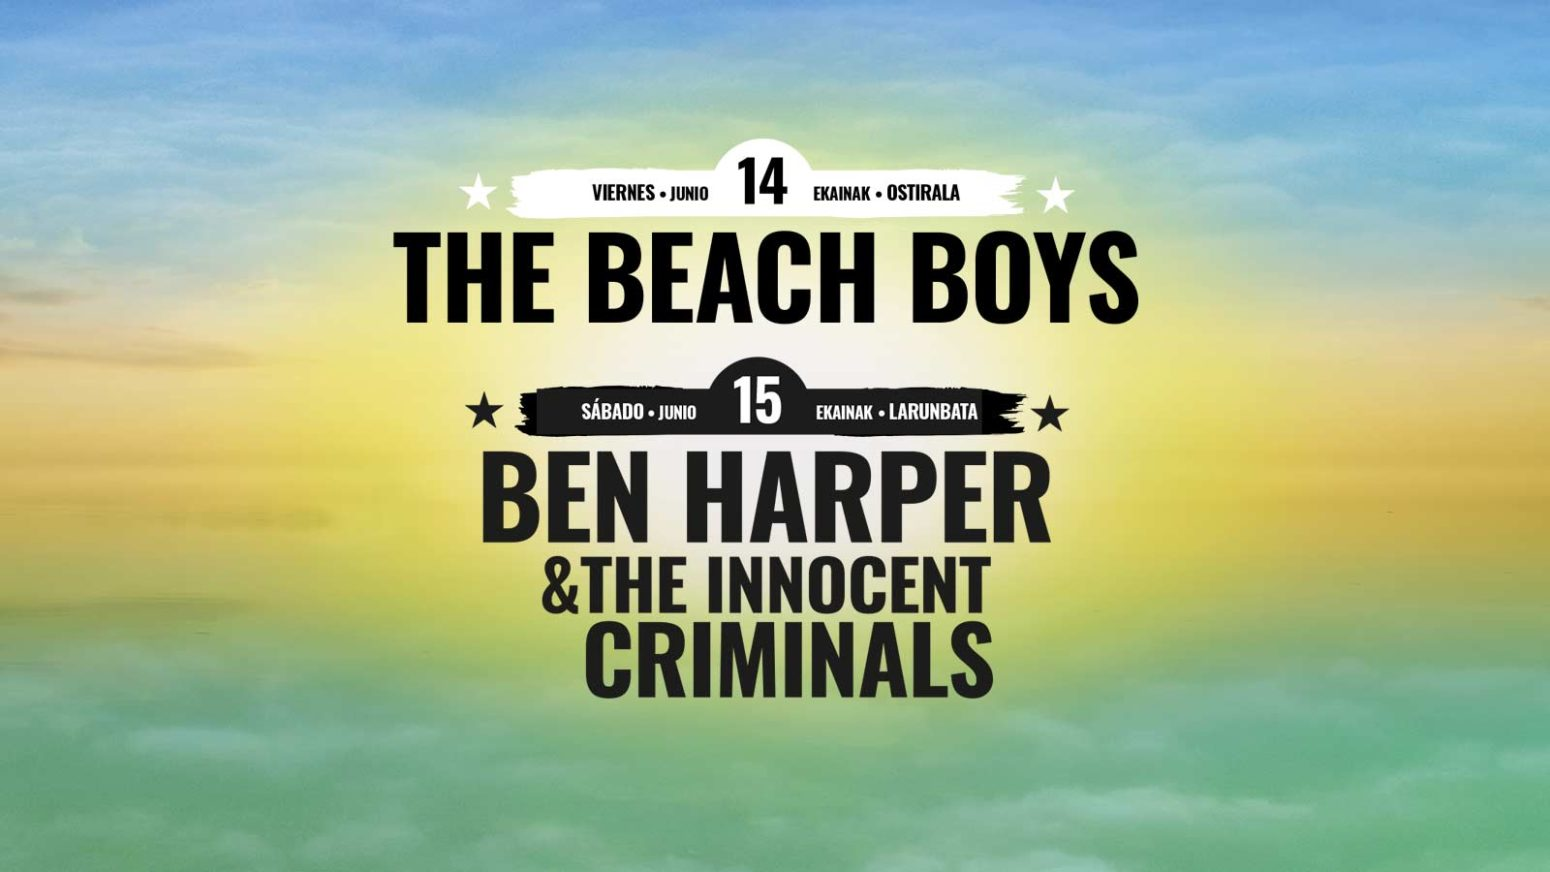 BBK MUSIC LEGENDS 2019: BEACH BOYS, BEN HARPER Y LITTLE STEVEN... DE MOMENTO. Slider-mlf-3-1550x872